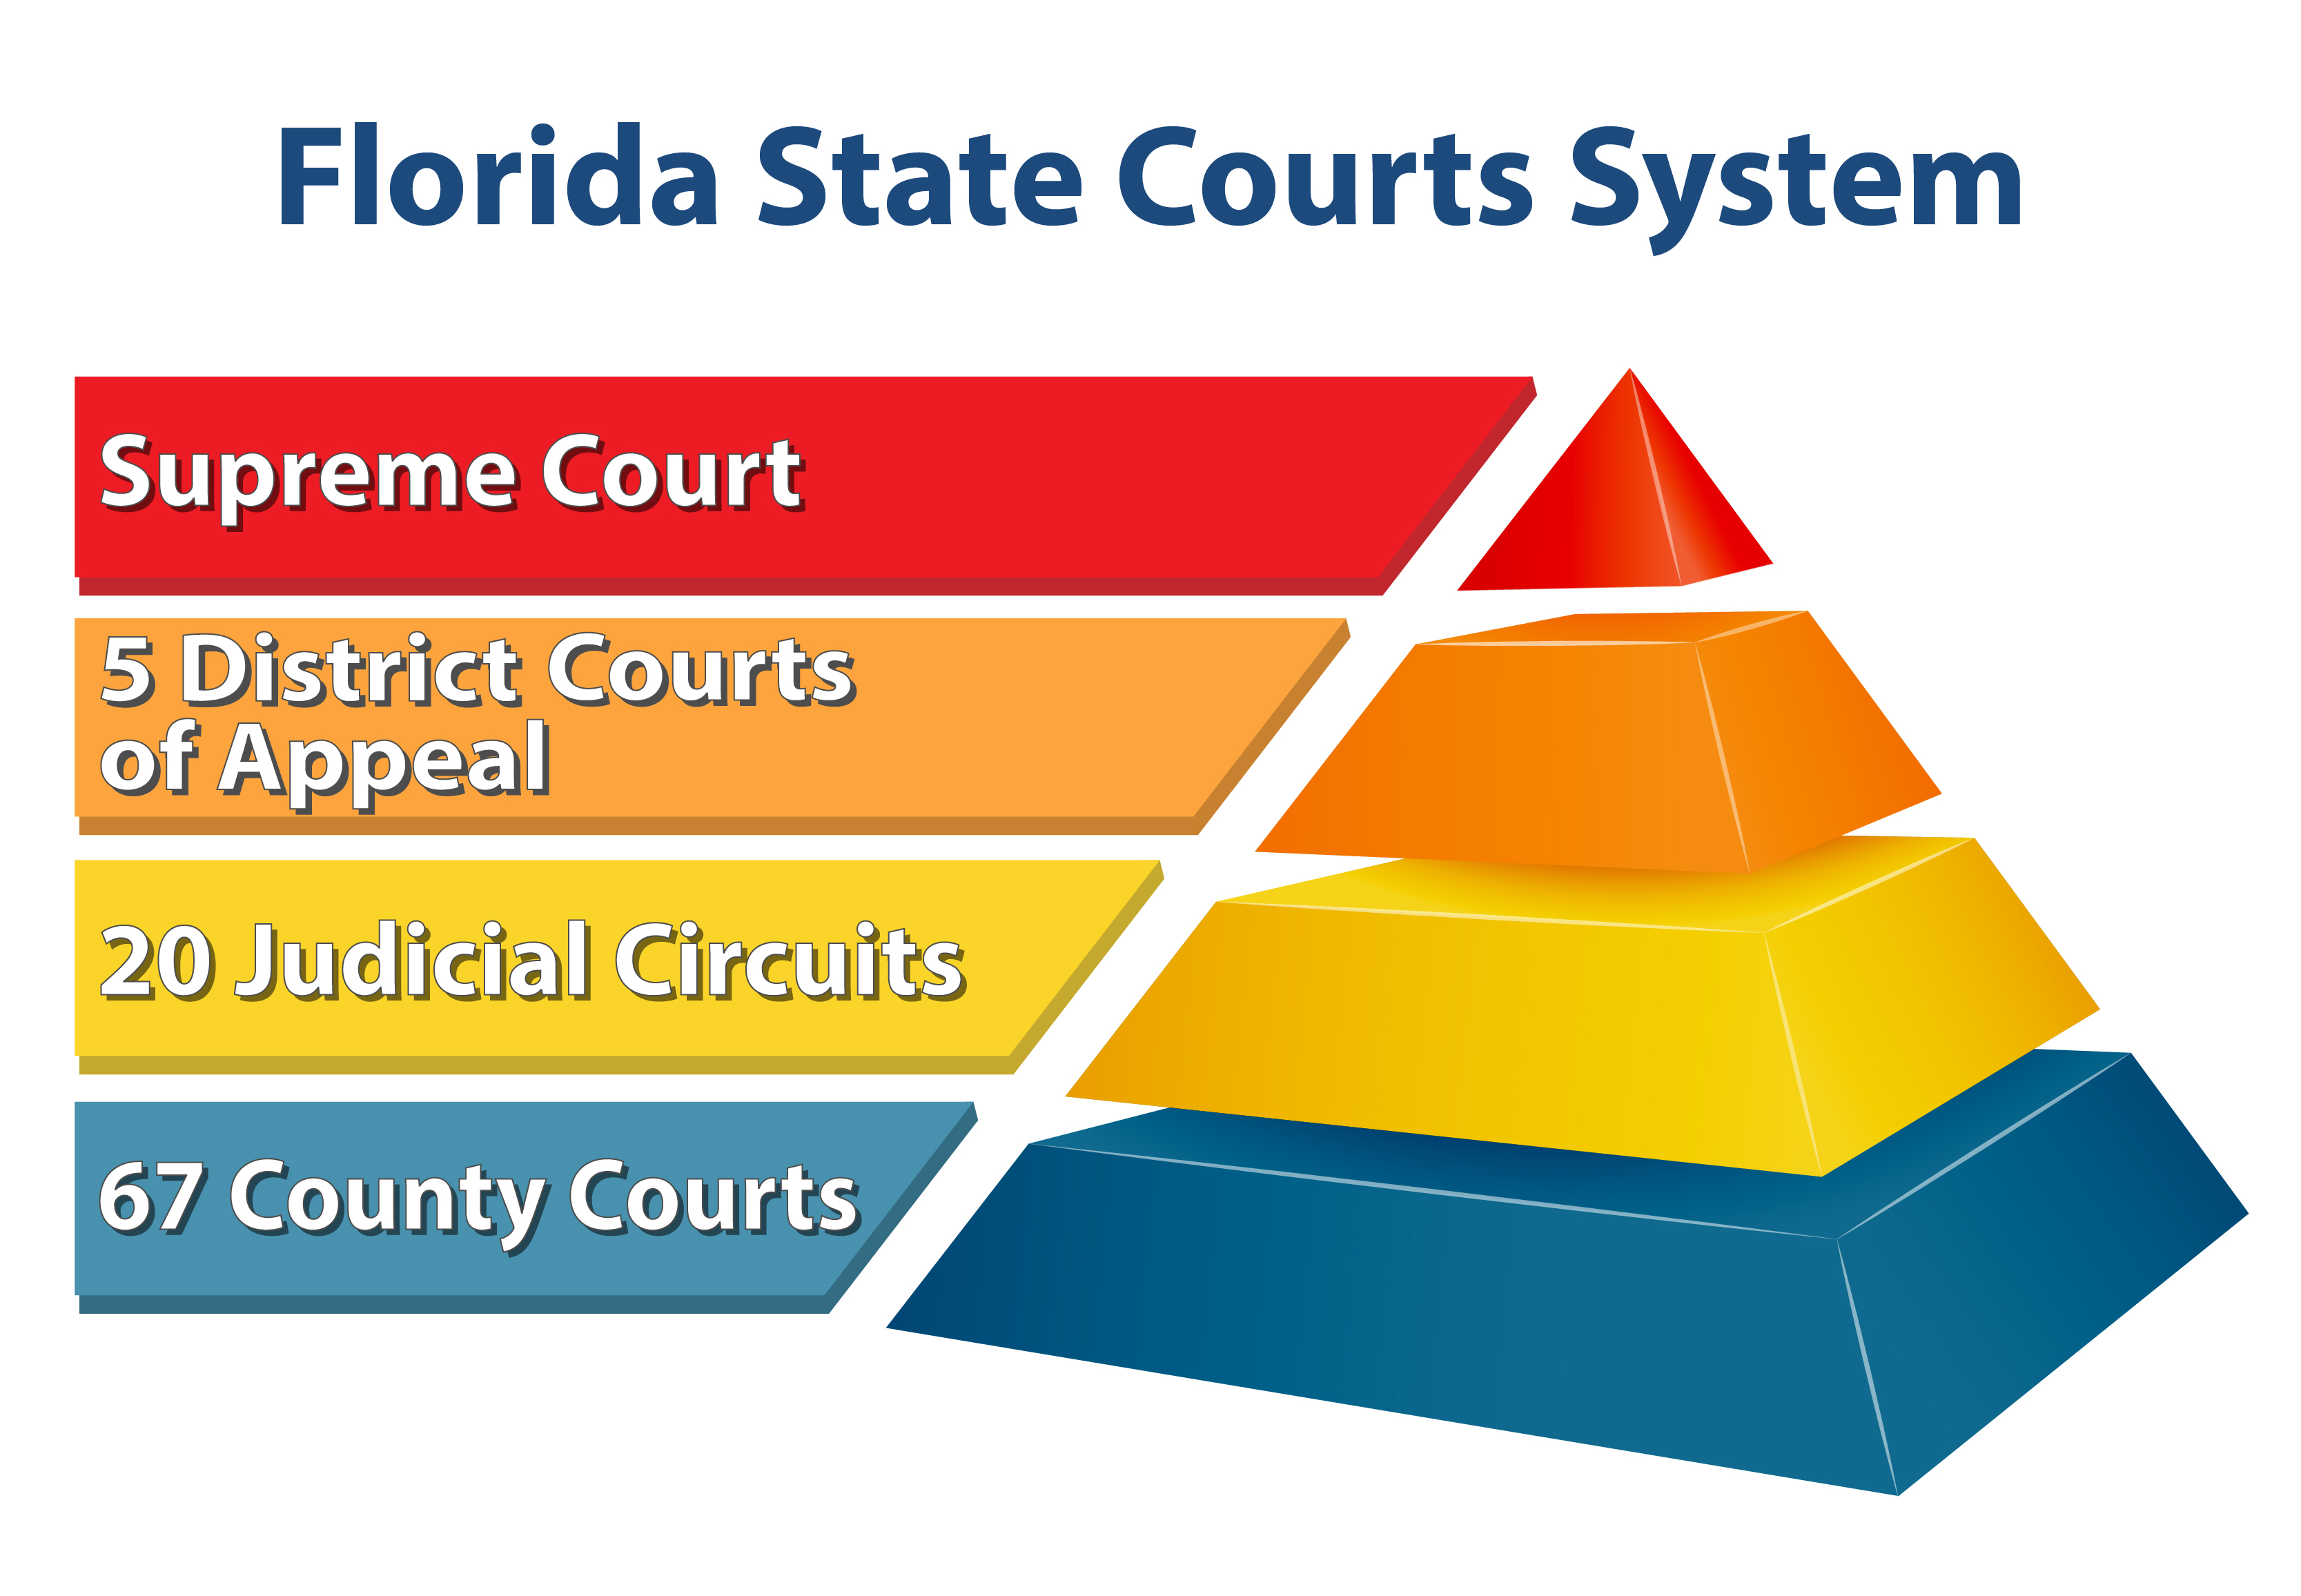 Structure of the Florida Court System